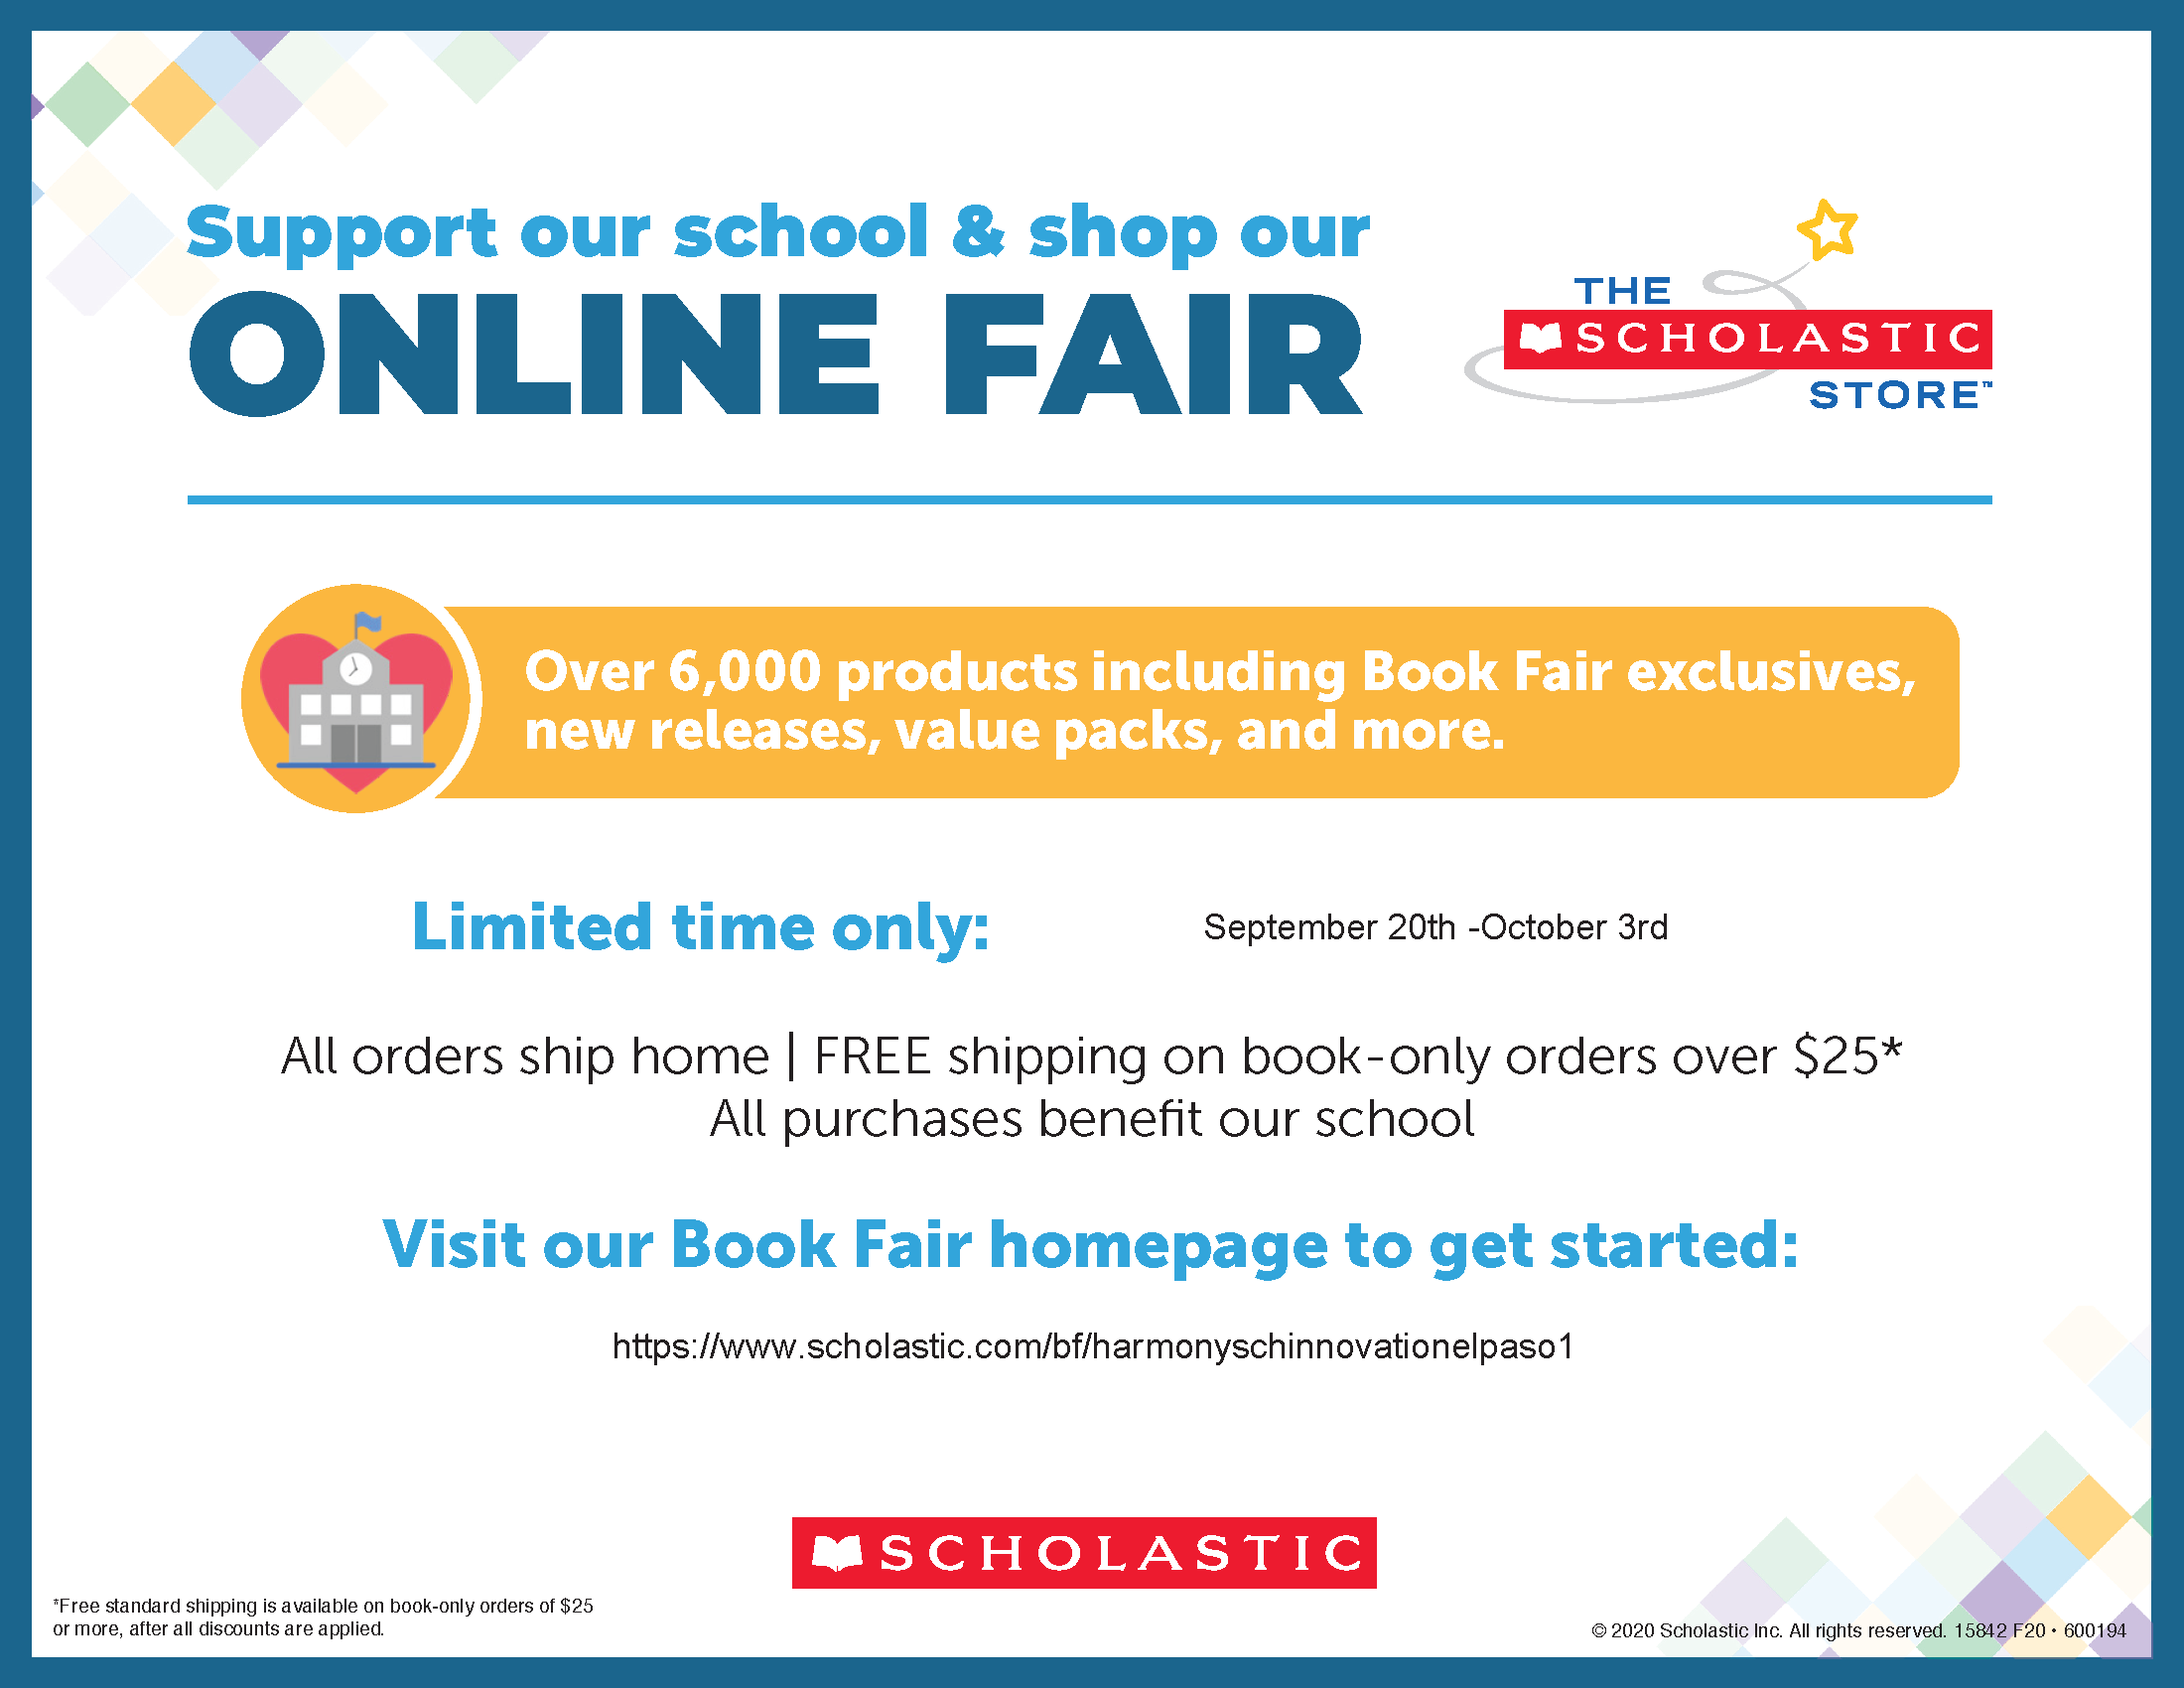 An image of the Virtual Book Fair flyer from September 20th - October 3rd.